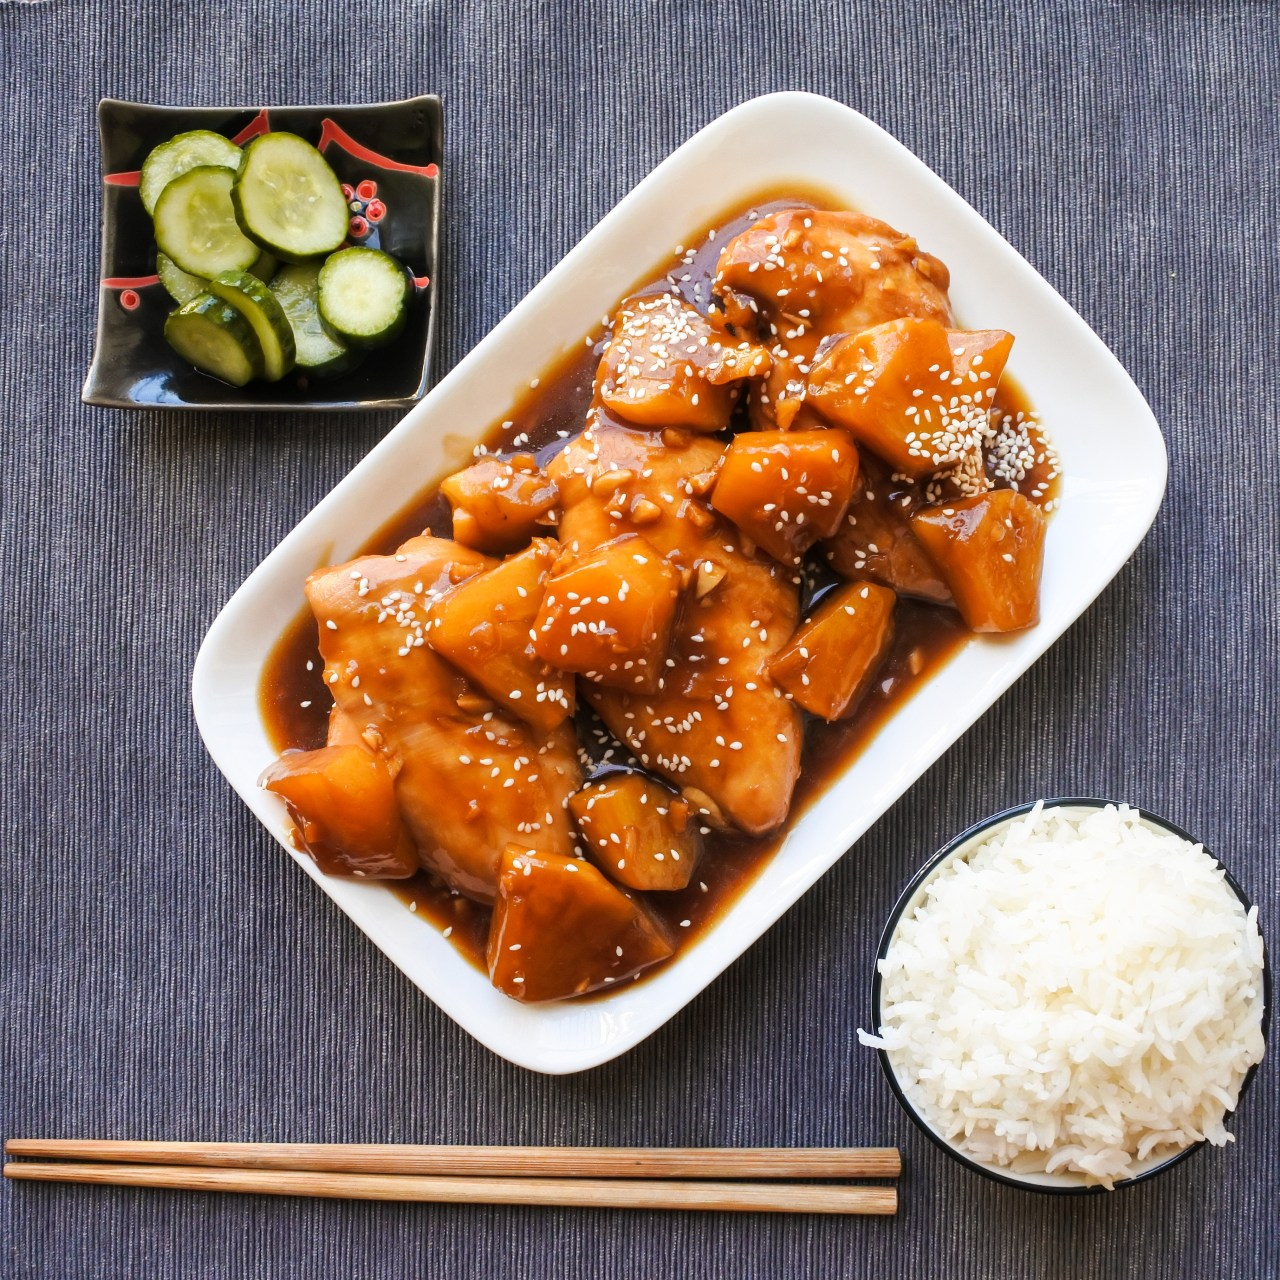 Chicken and pineapple in a soy glaze served with jasmine rice and pickled cucumber